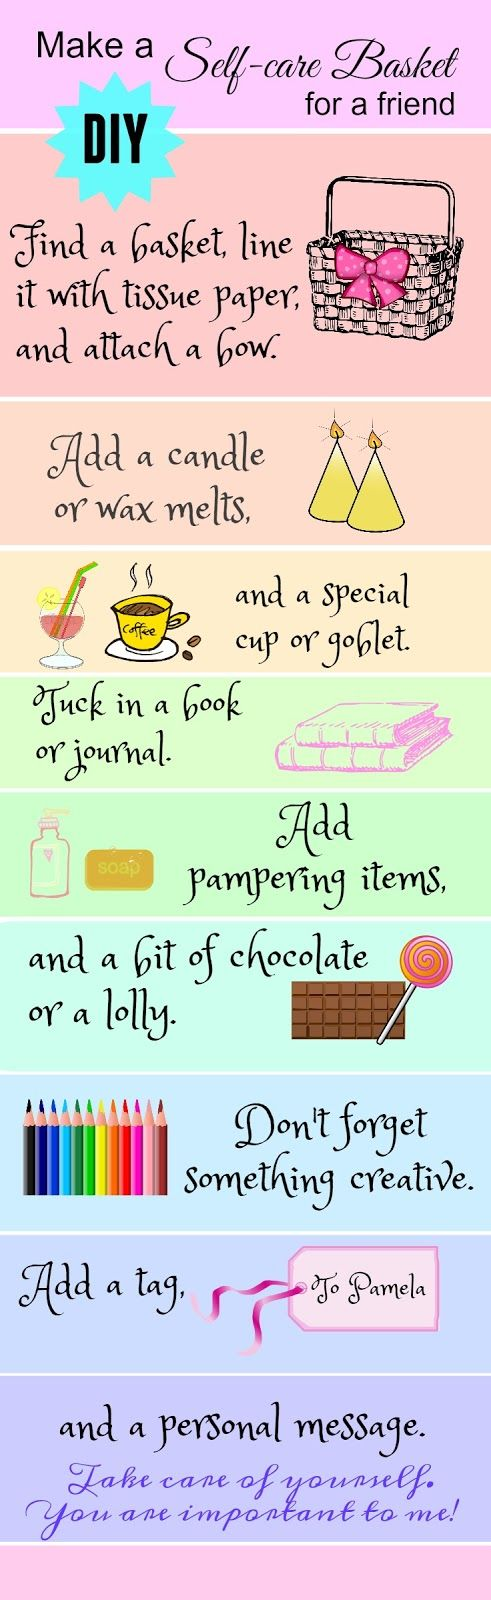 Best 25+ Gifts for friends ideas on Pinterest | Presents for ...